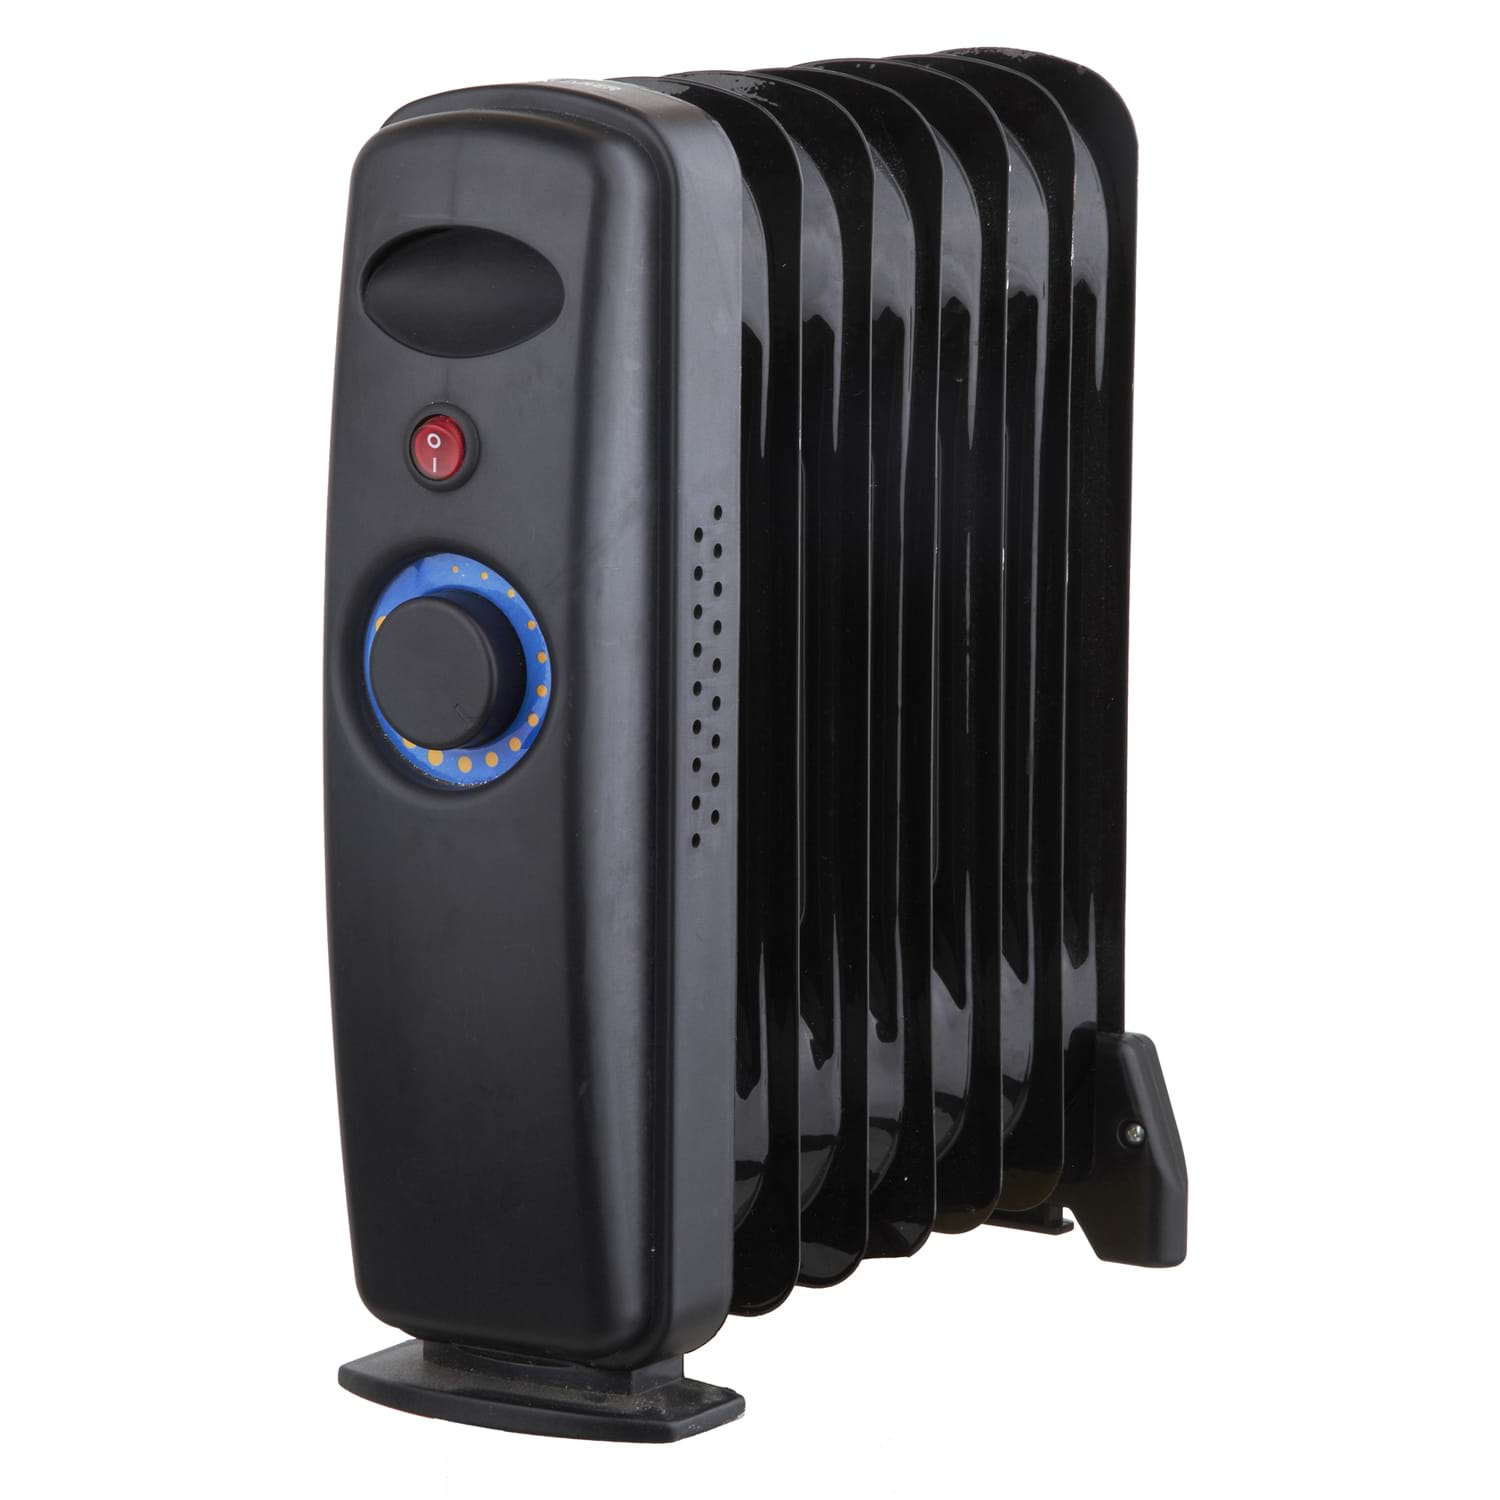 Blackspur 1000w 9 Fin Oil Filled Radiator